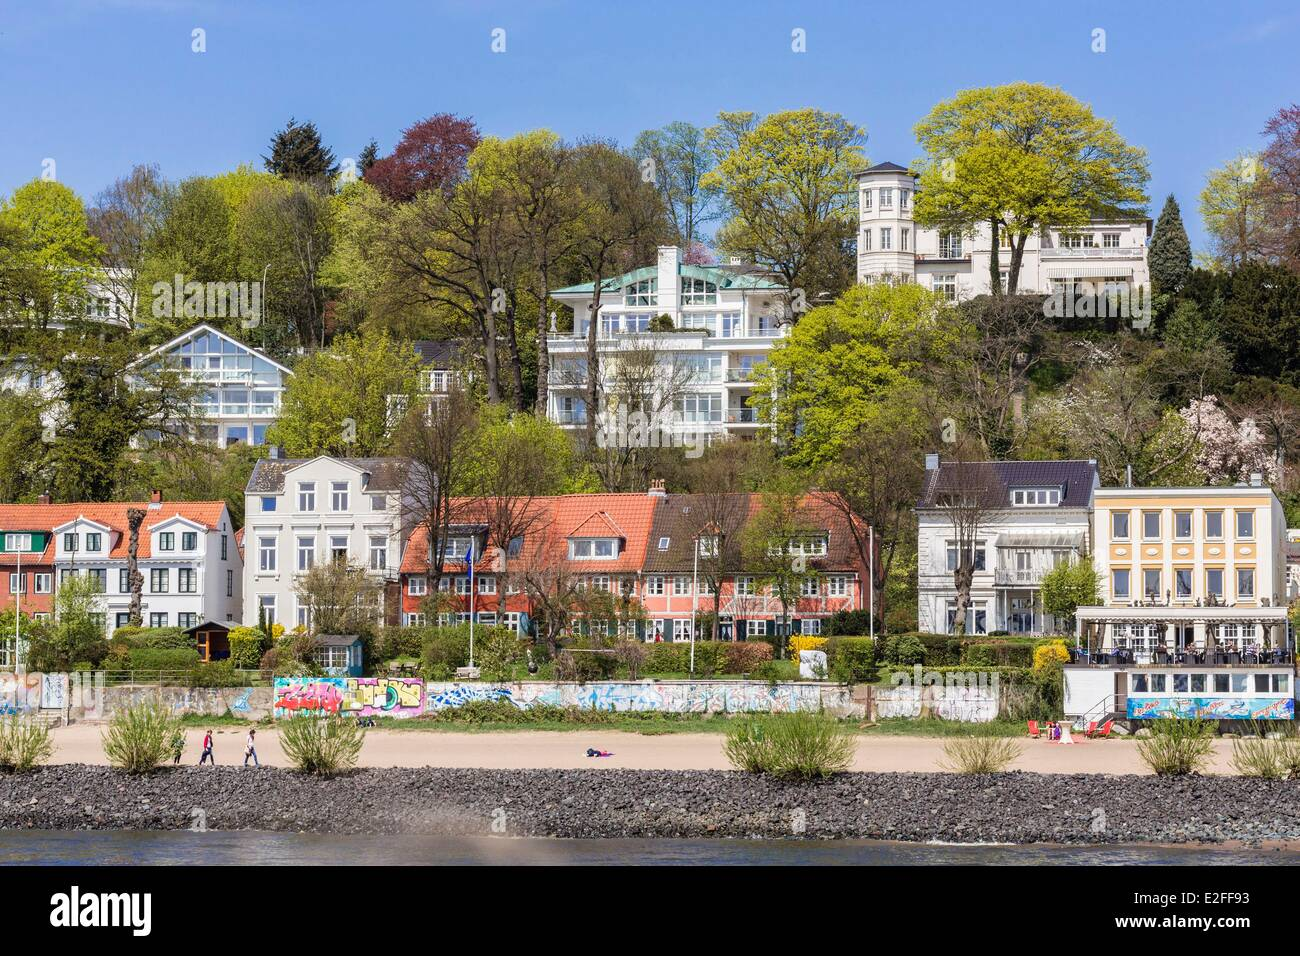 Germany, Hamburg, Ovelgonne area, the Elbe river with its beaches - Stock Image